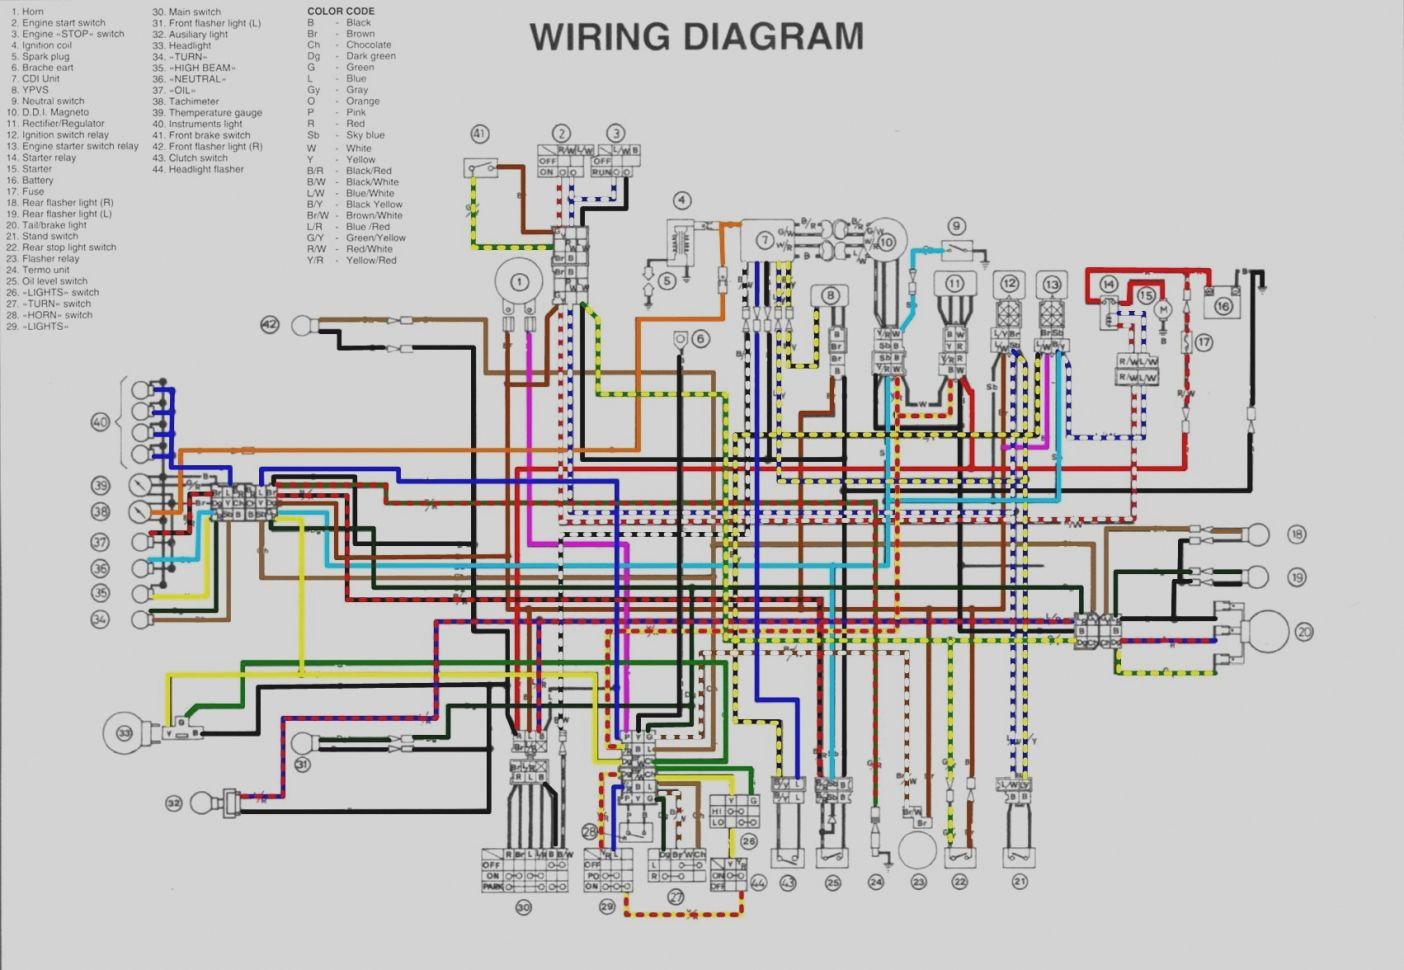 2006 Yfz 450 Wiring Diagram In Yamaha Yfz450 Forum Yfz450r Yfz450x And